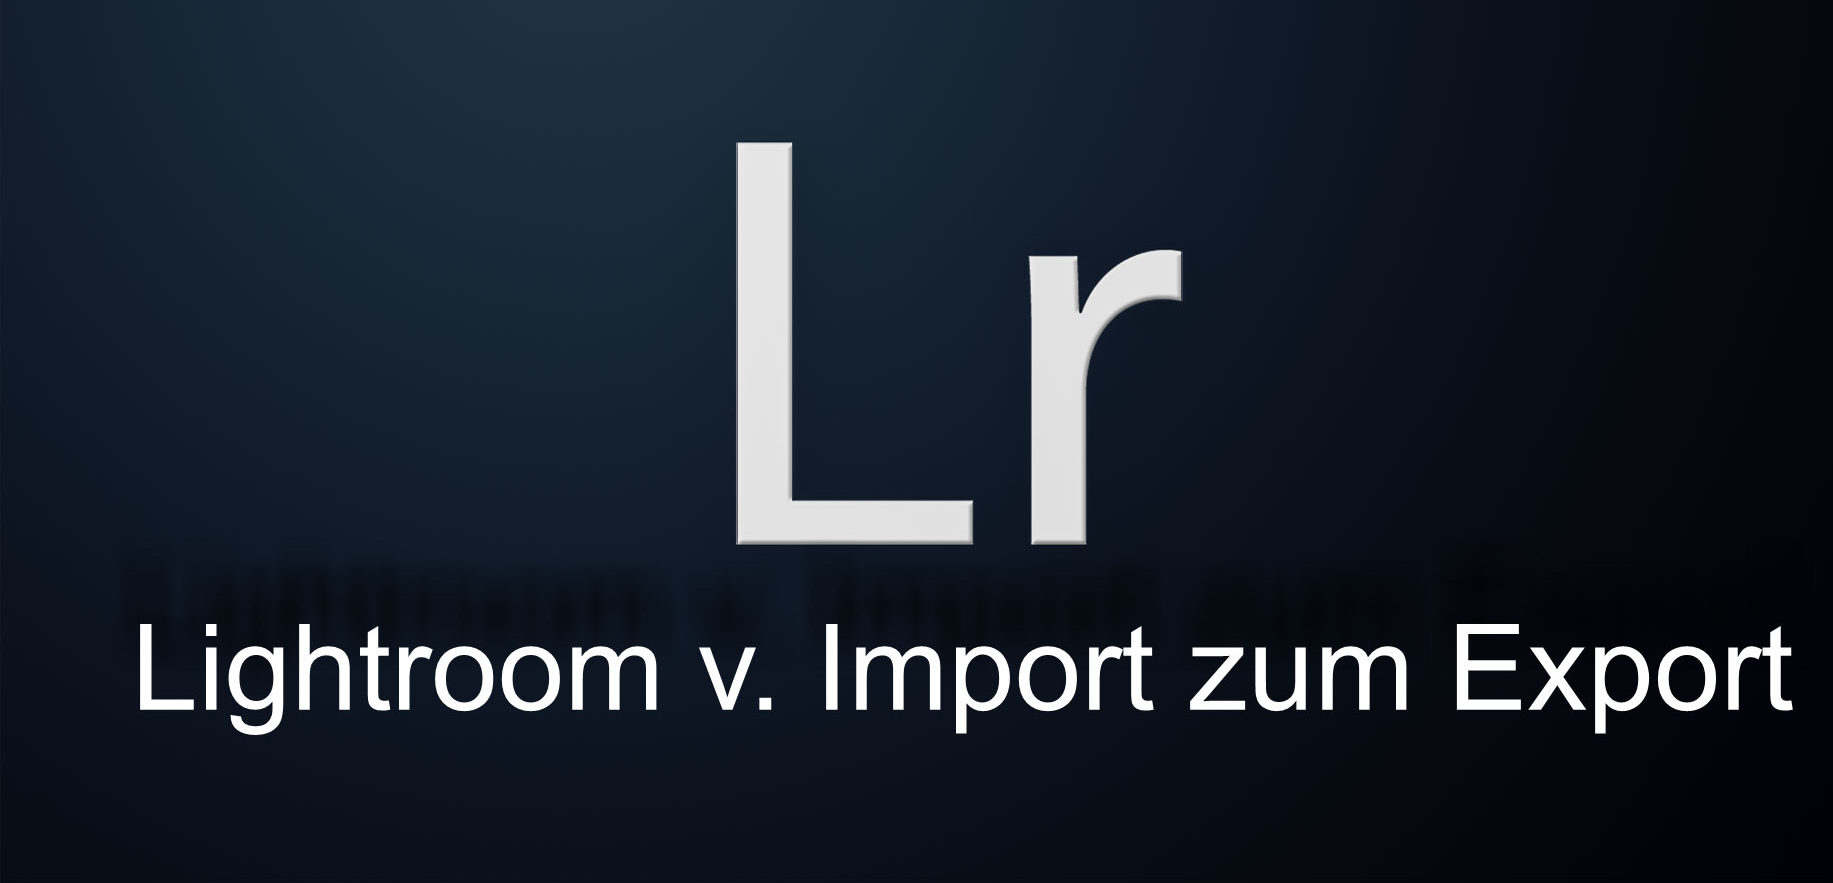 Lightroom v. Import z. Export, Teil 4 Bilderimport.